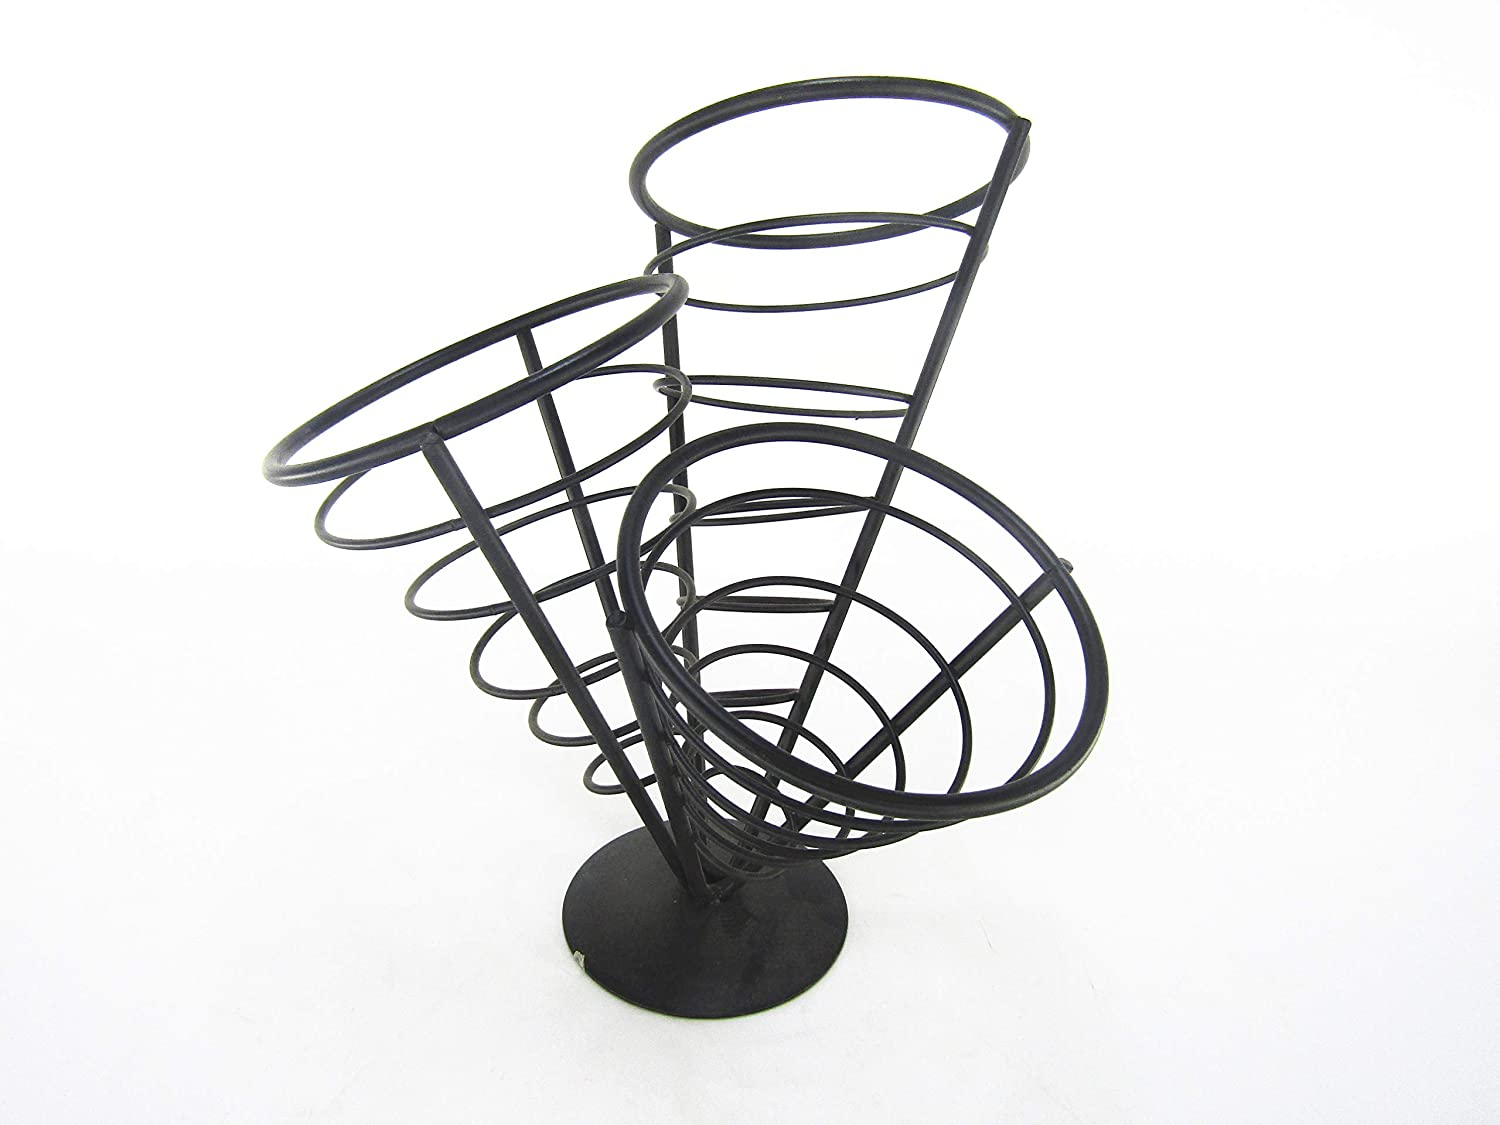 1  pezzi Holder for Egg waffle Maker French Fry stand con supporto per cestino Fries Fish and Chips BaoShiShan HUK2177